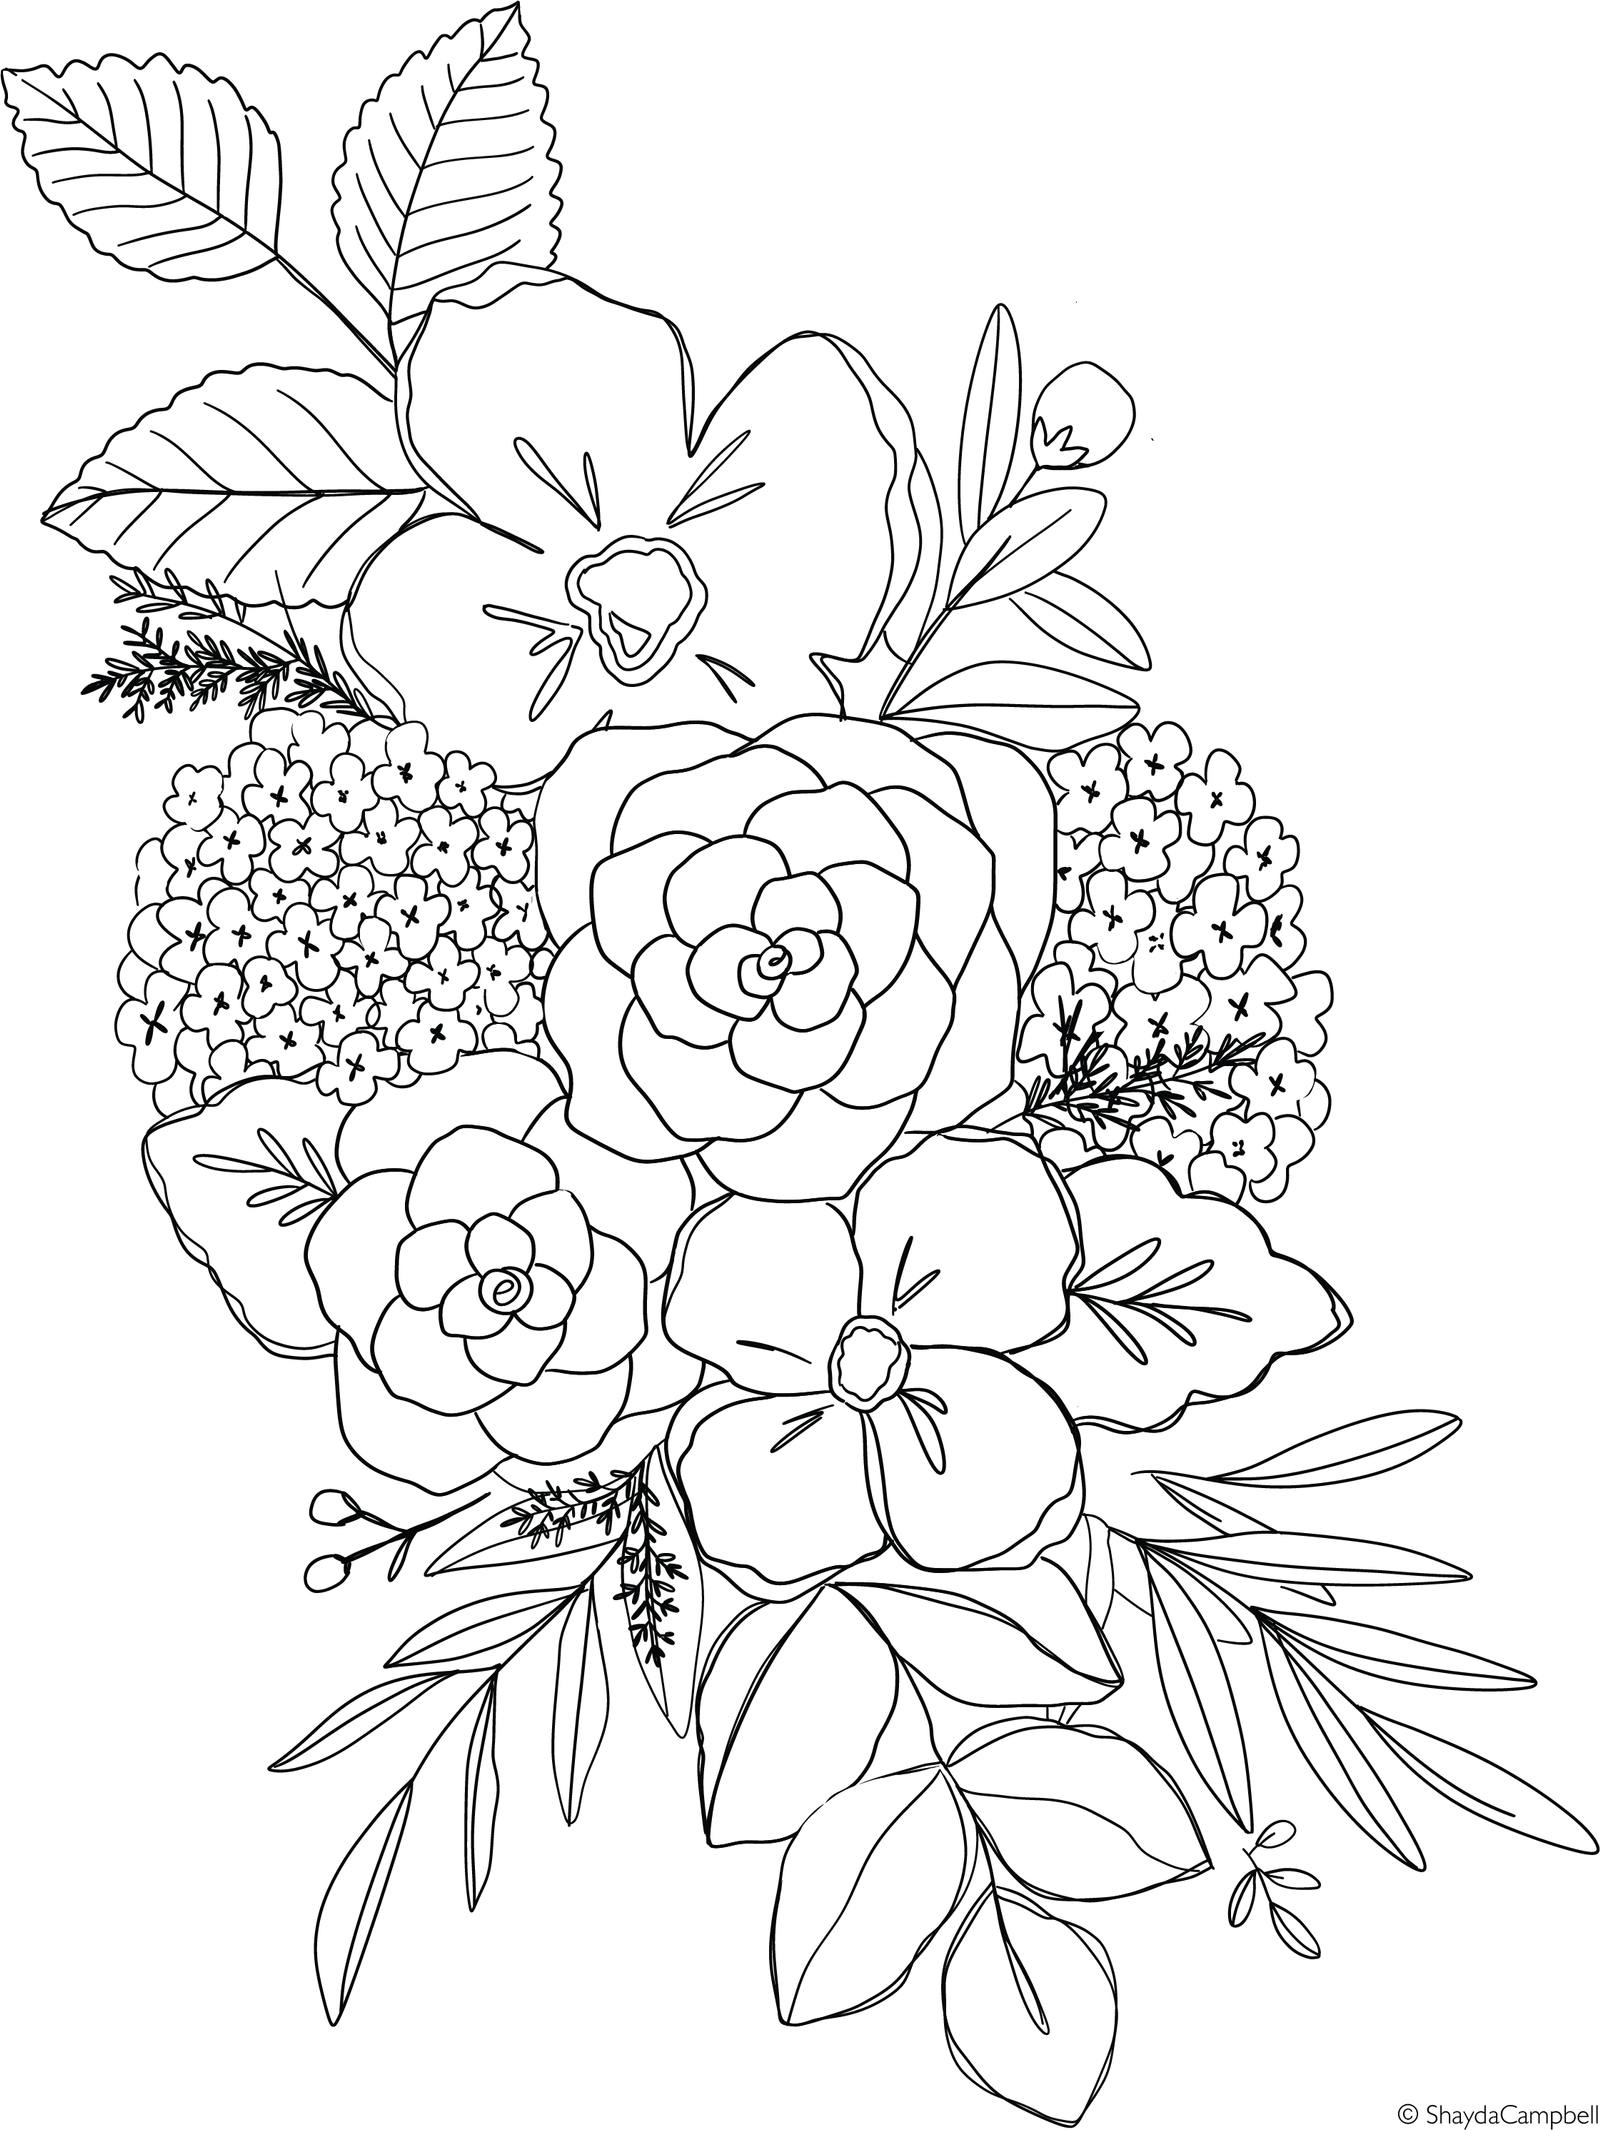 - Spring Hydrangea Coloring Page Flower Drawing Design, Watercolor